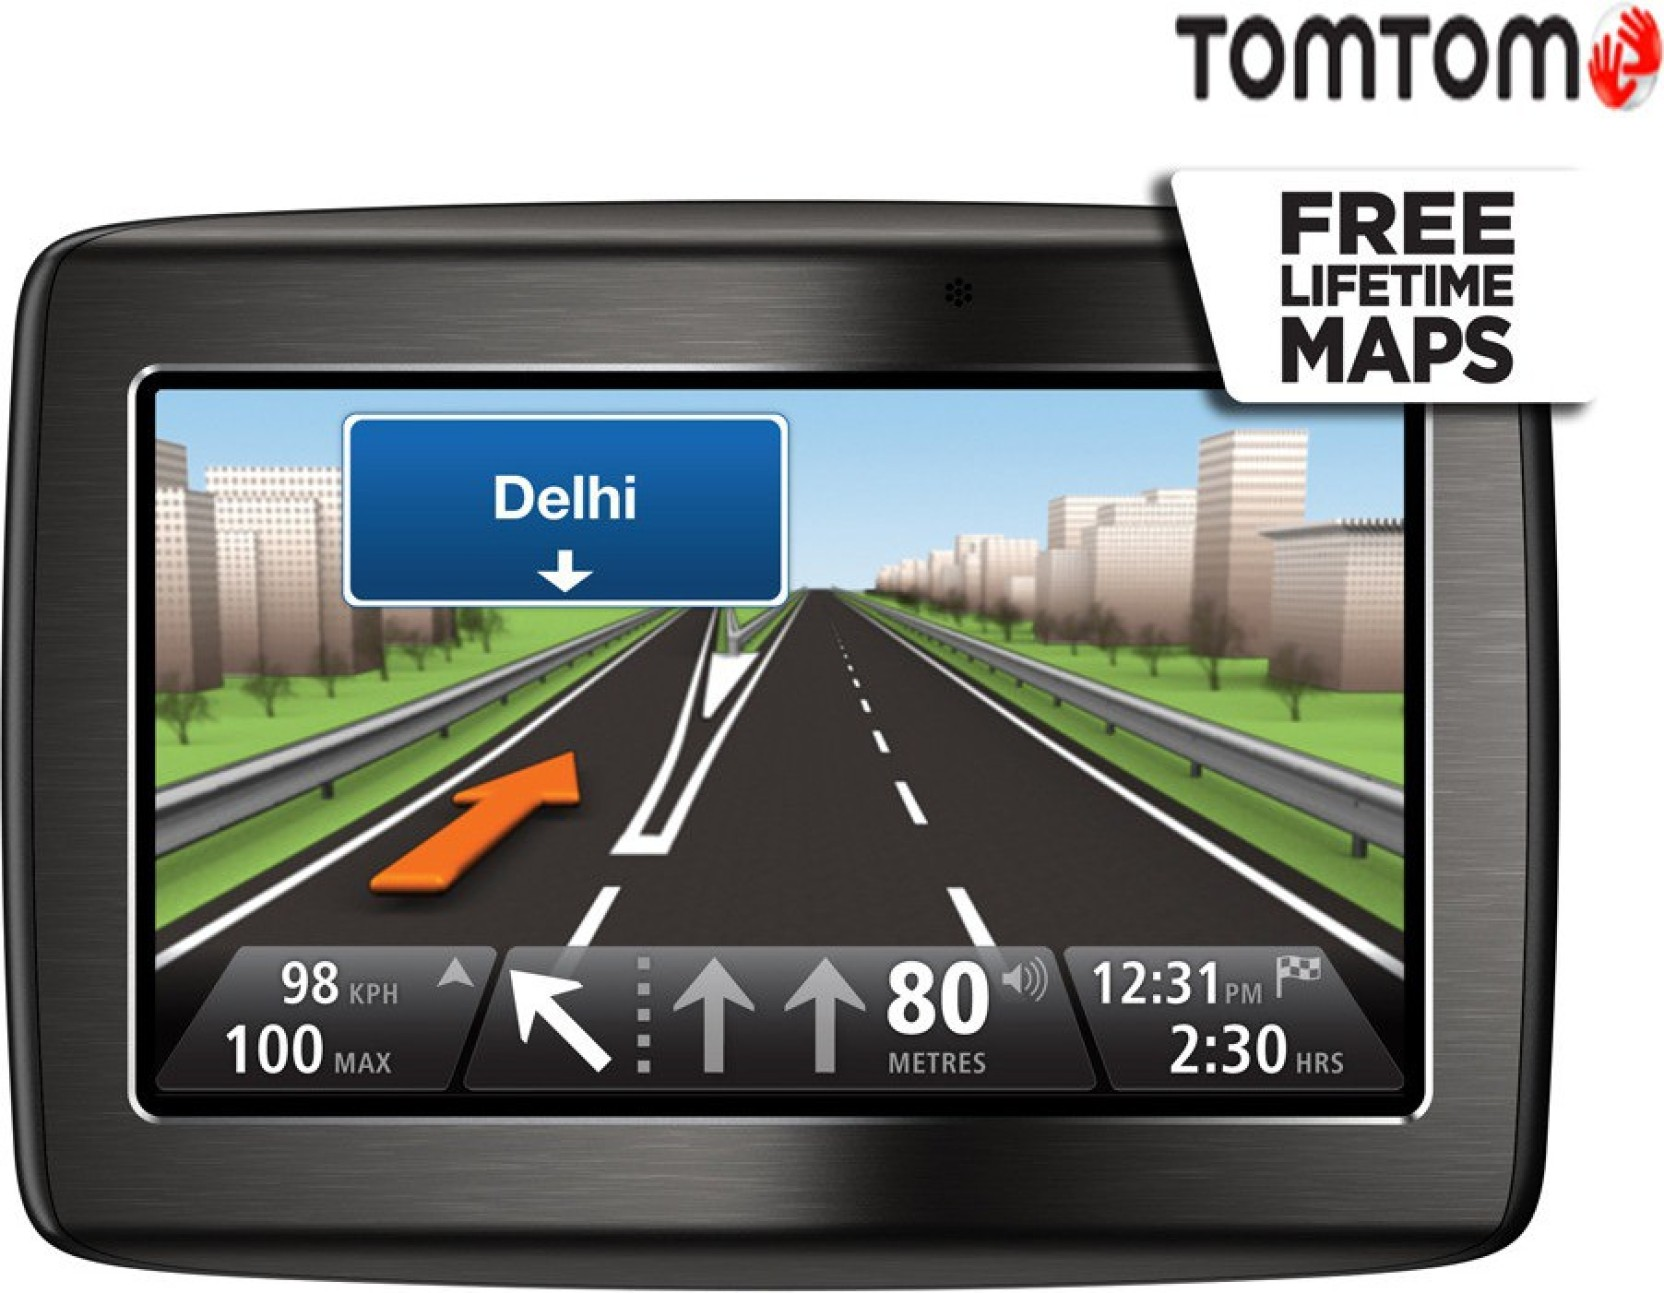 TomTom Via 120+ GPS Device (7300 Maps, metallic grey)